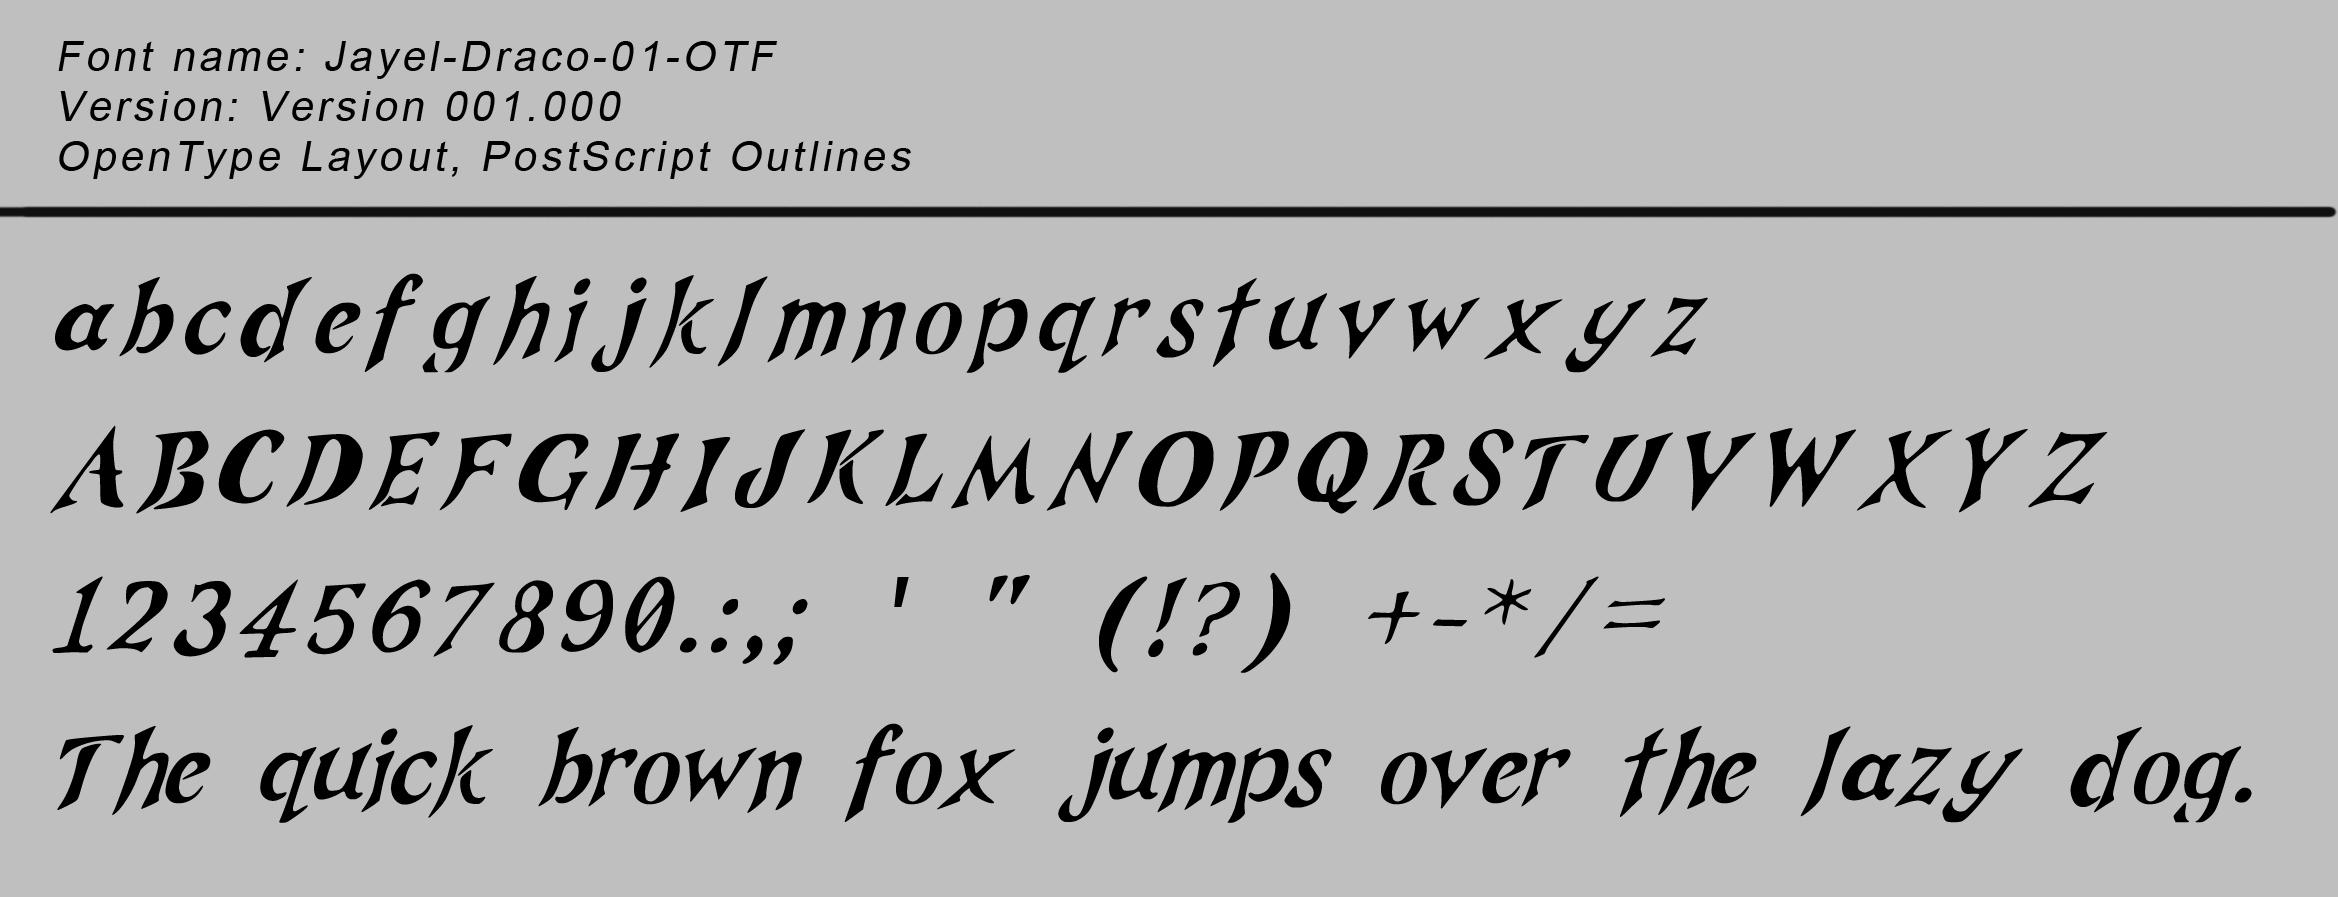 Jayel Draco 01 TTF - free font - preview image.